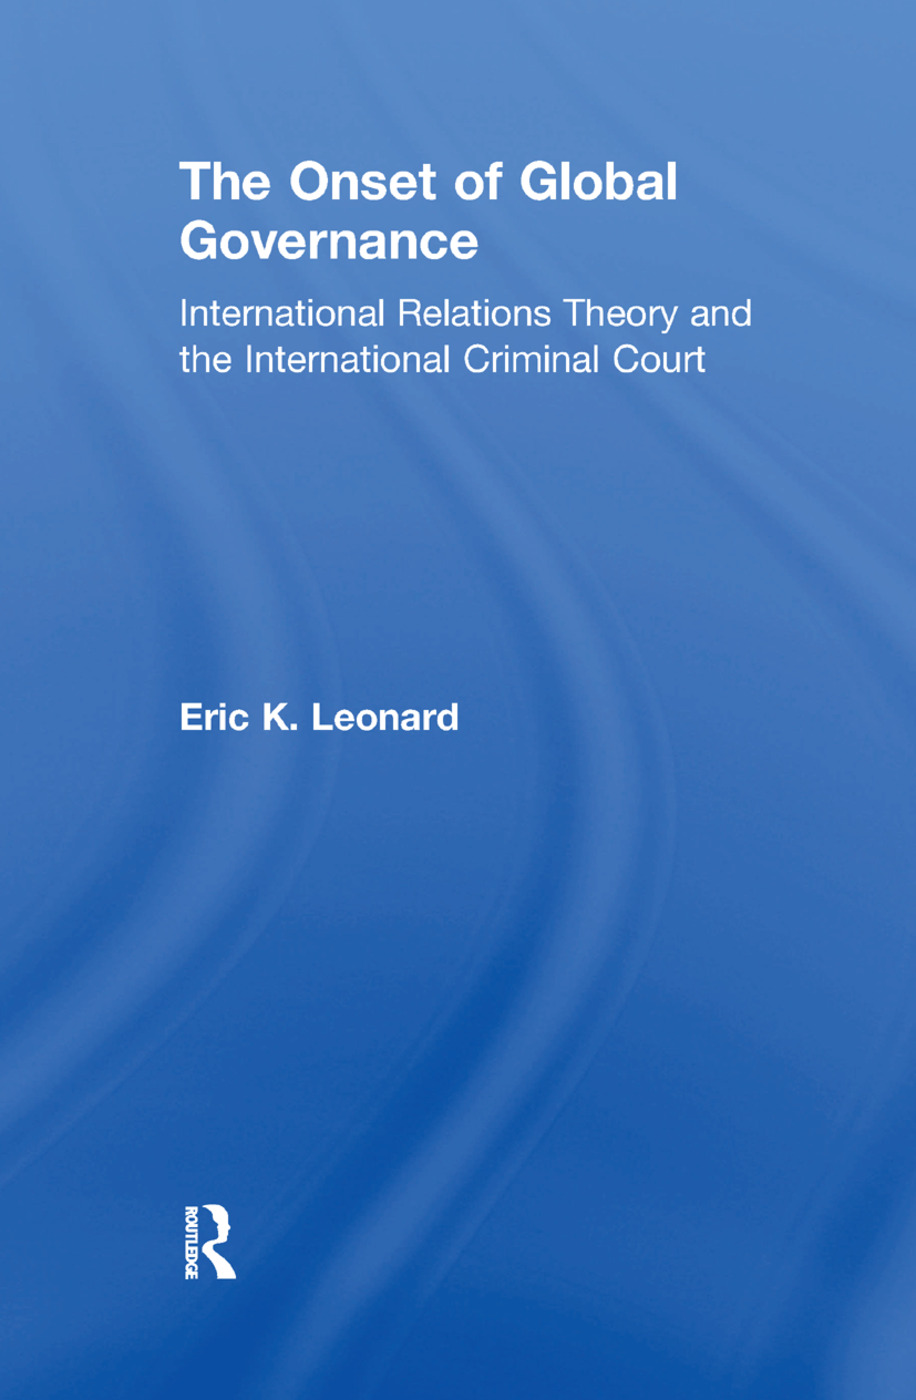 The Onset of Global Governance: International Relations Theory and the International Criminal Court book cover